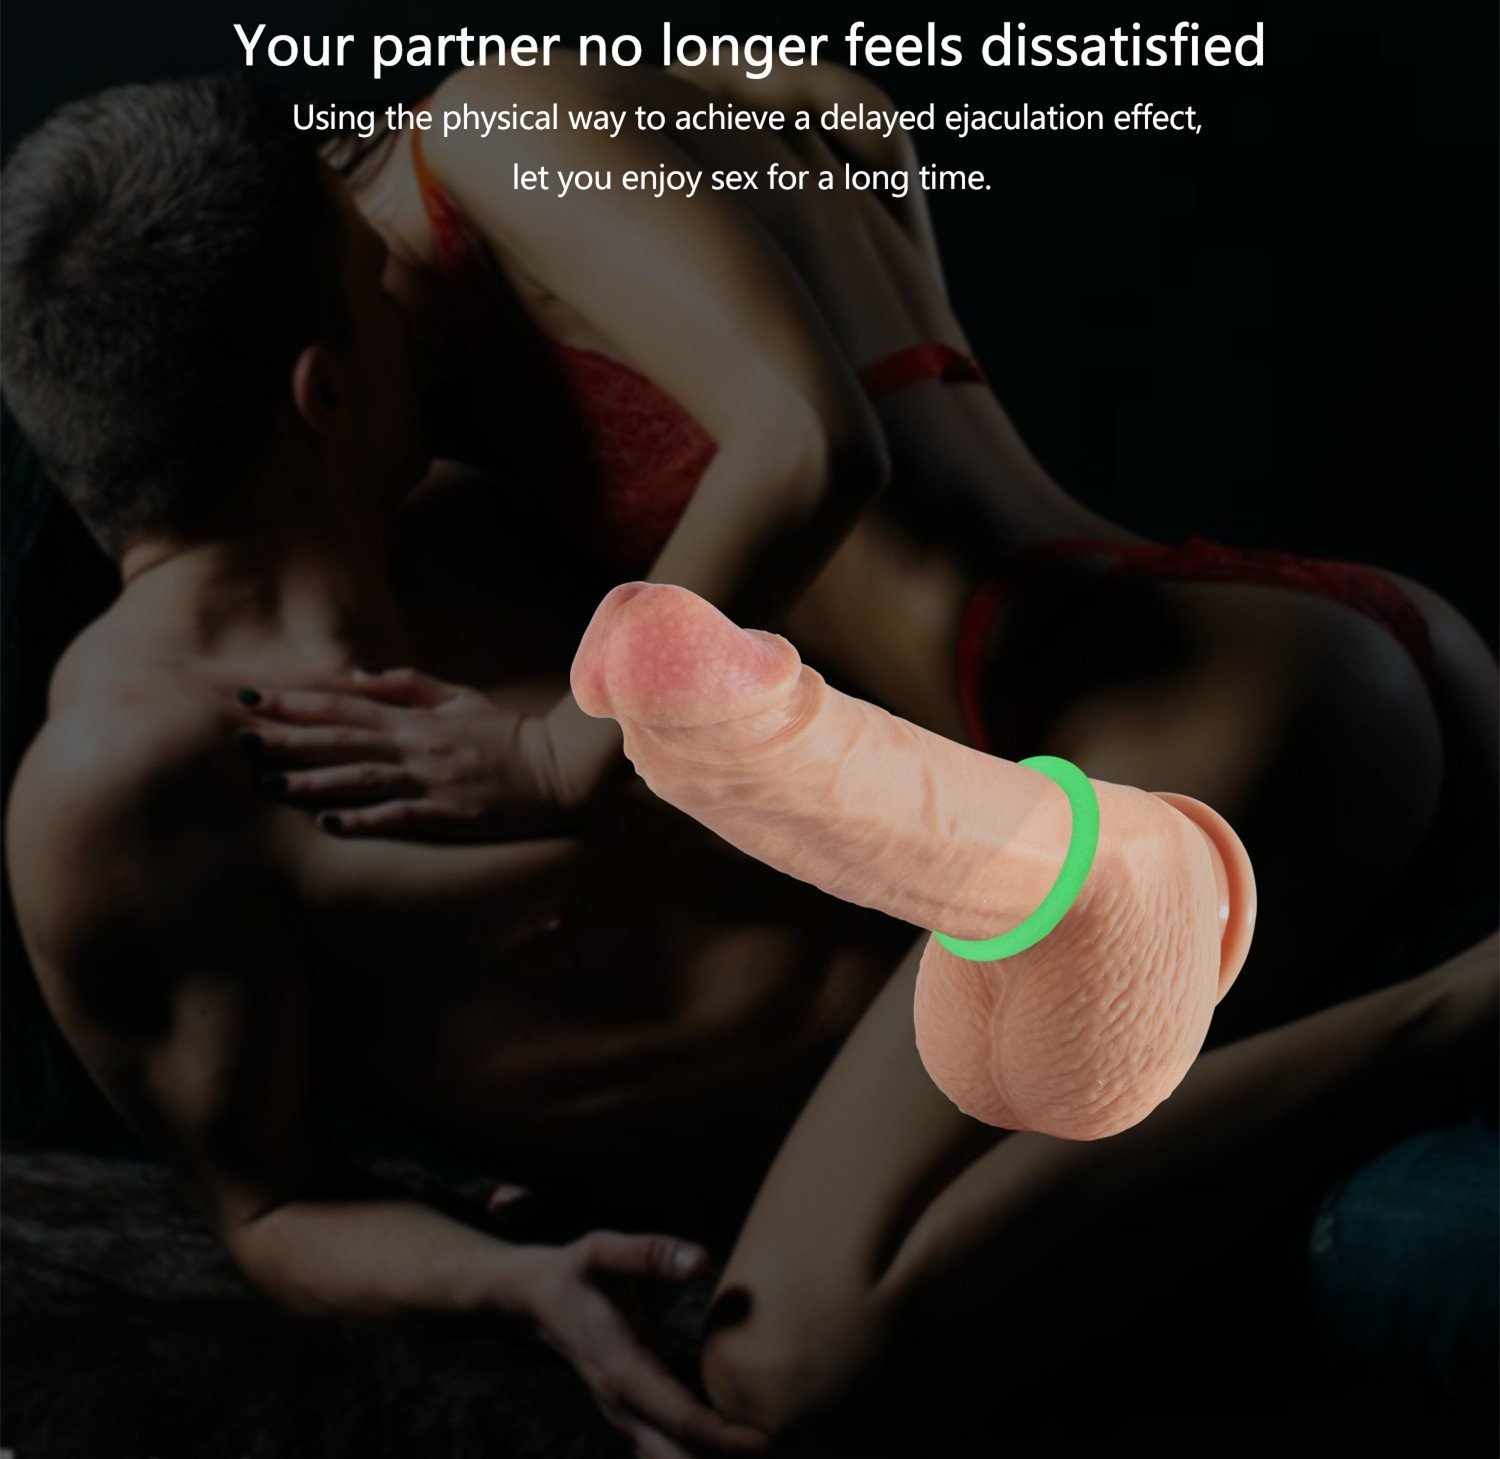 Cock Ring, Xocity, Silicone Penis Rings, Noctilucous Type Cockring Sex Toys for Men and Couples, 3 Pack